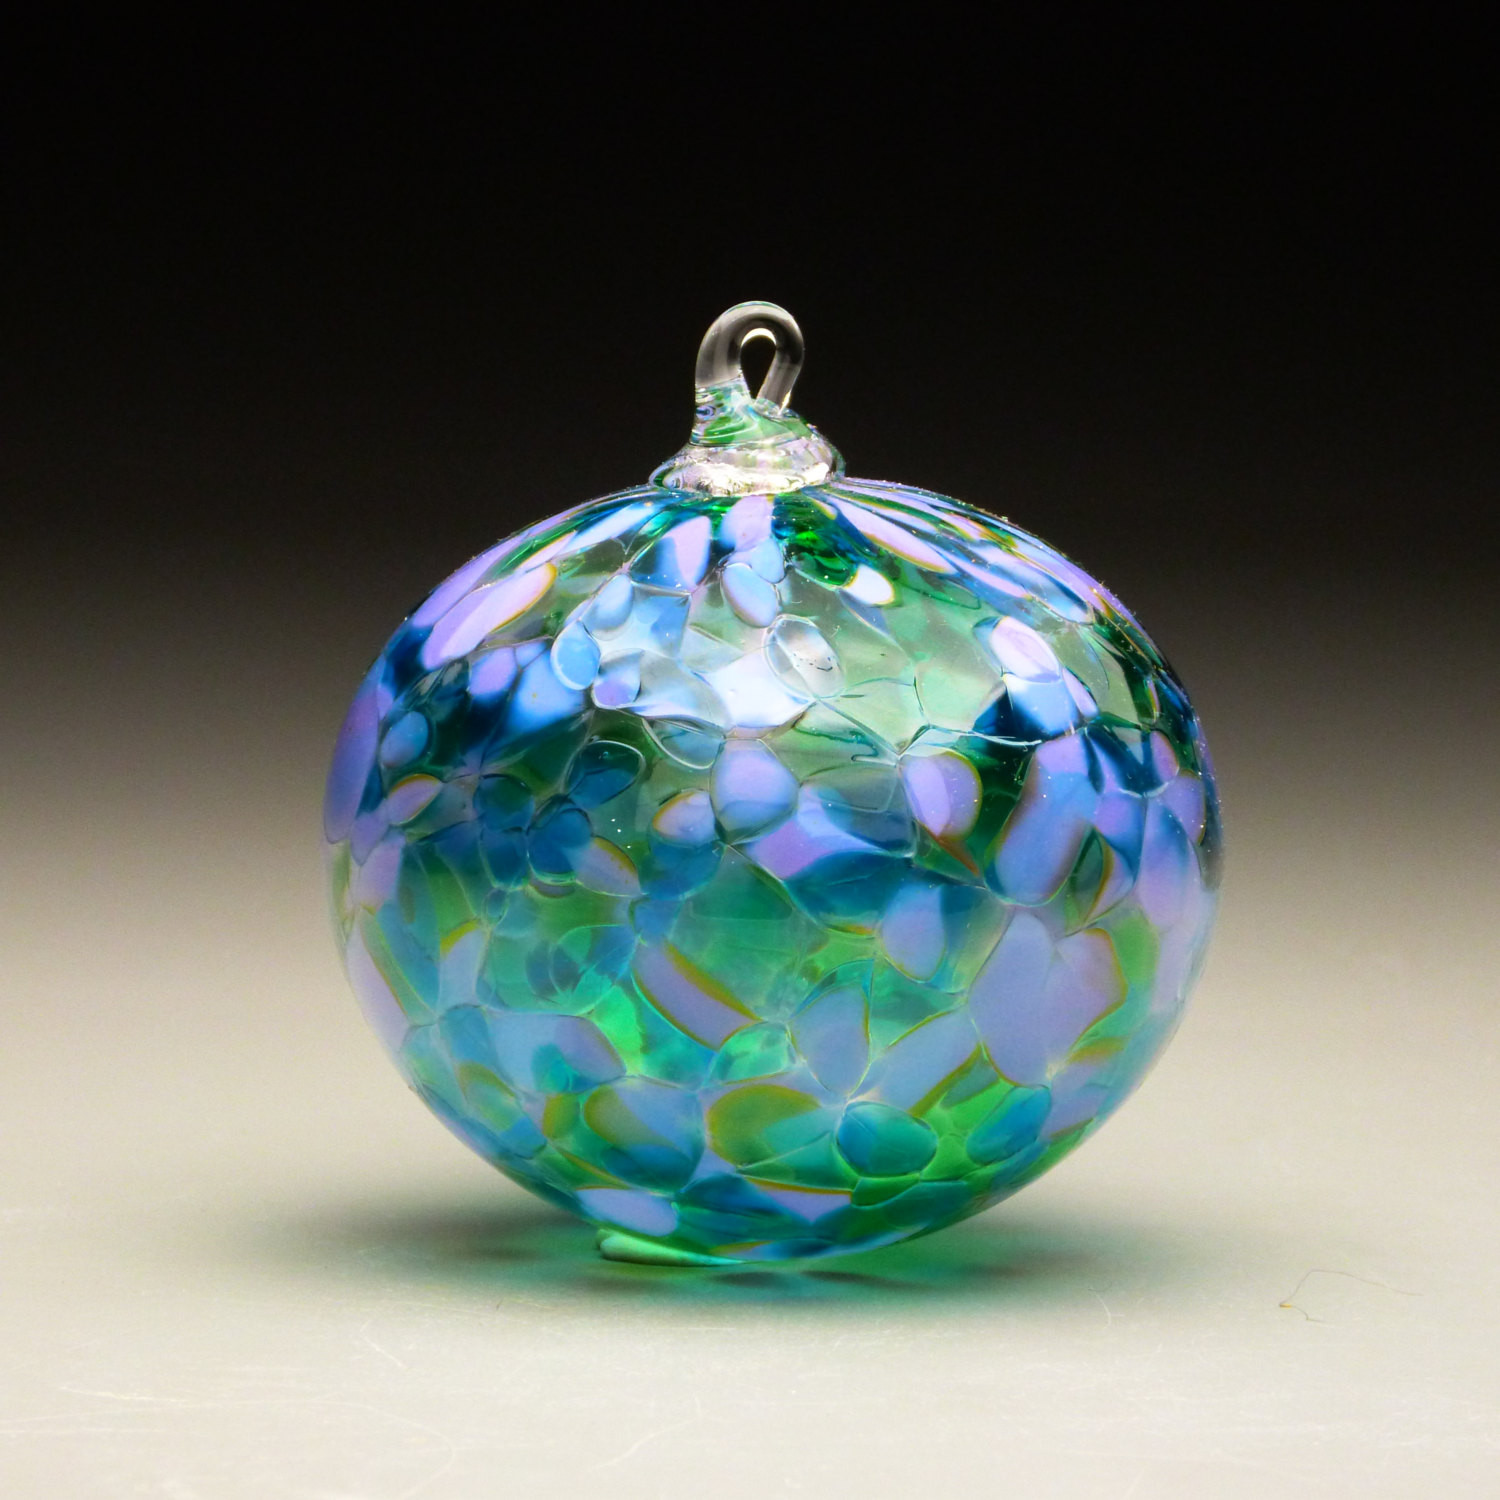 Handmade Glass Christmas Ornaments – Hunting Handmade